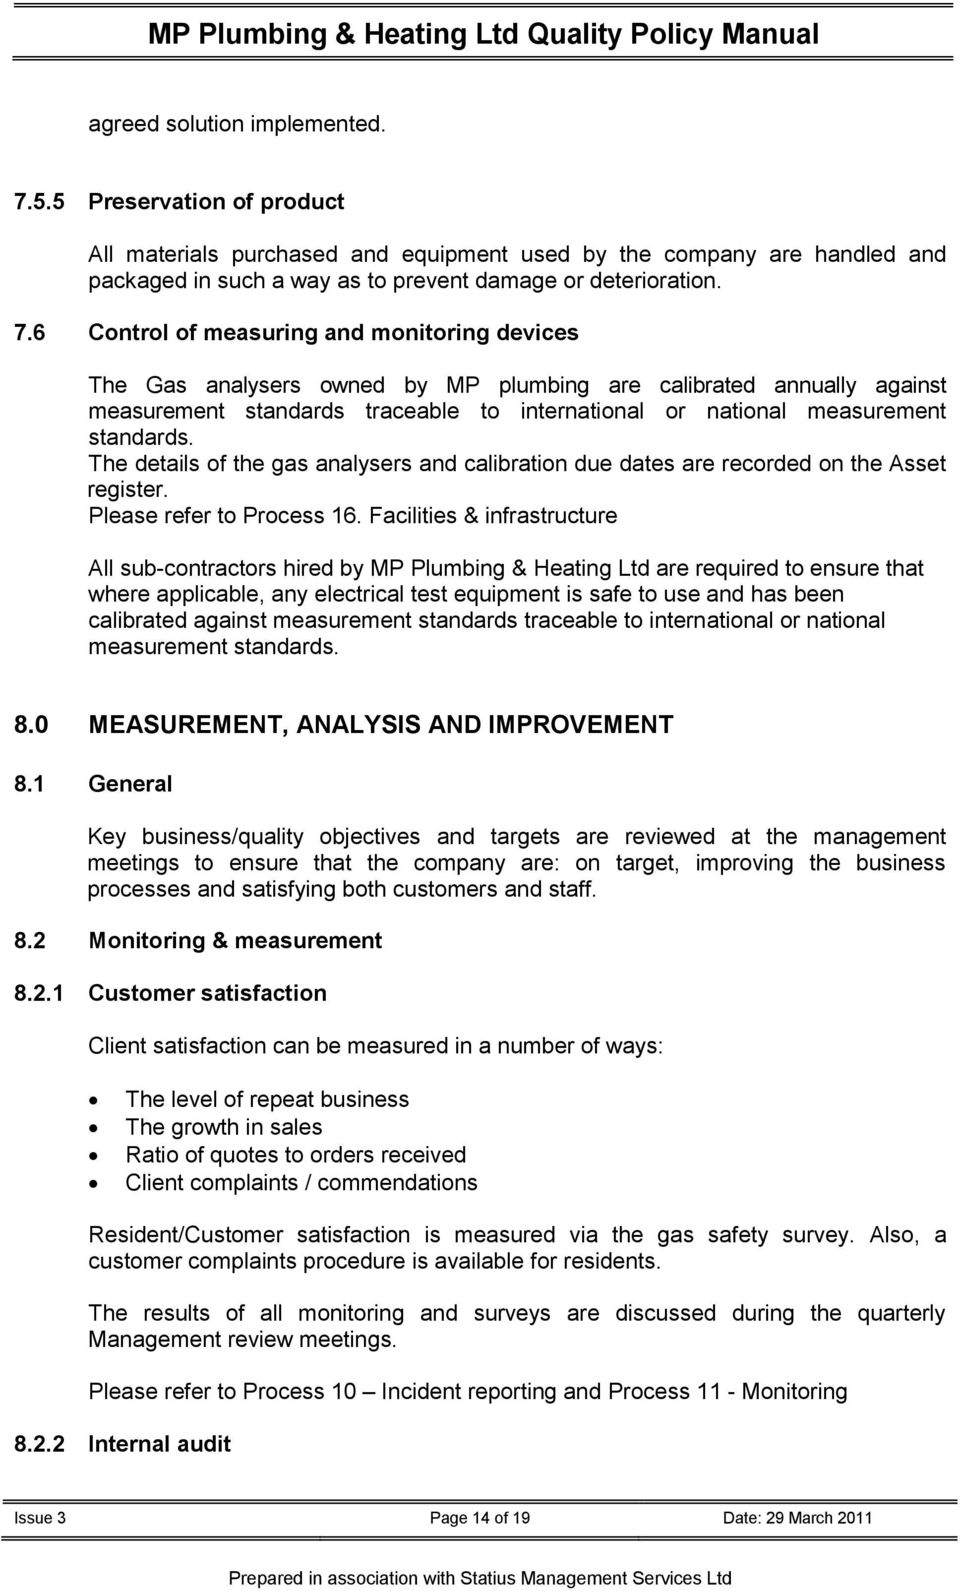 Health /& Safety Documents /& Risk Assessment Templates for Plumbers//Heating Engineers